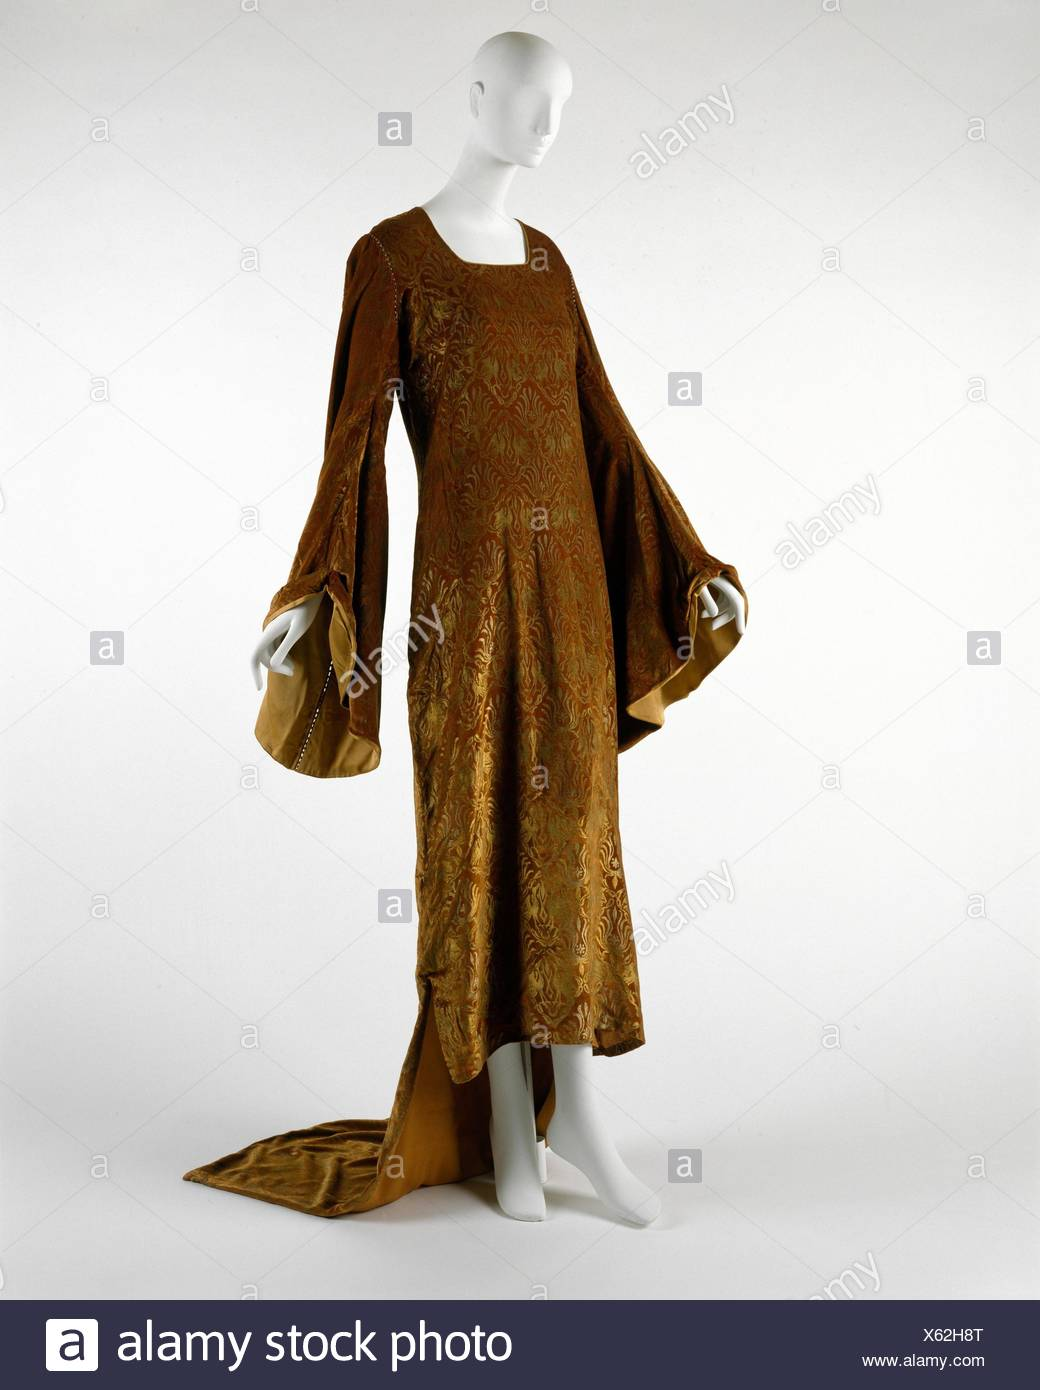 Evening Dress Designer Maria Gallenga Italian Rome 1880 1944 Umbria Date Early 20th Century Culture Italian Medium Silk Glass Credit Stock Photo Alamy